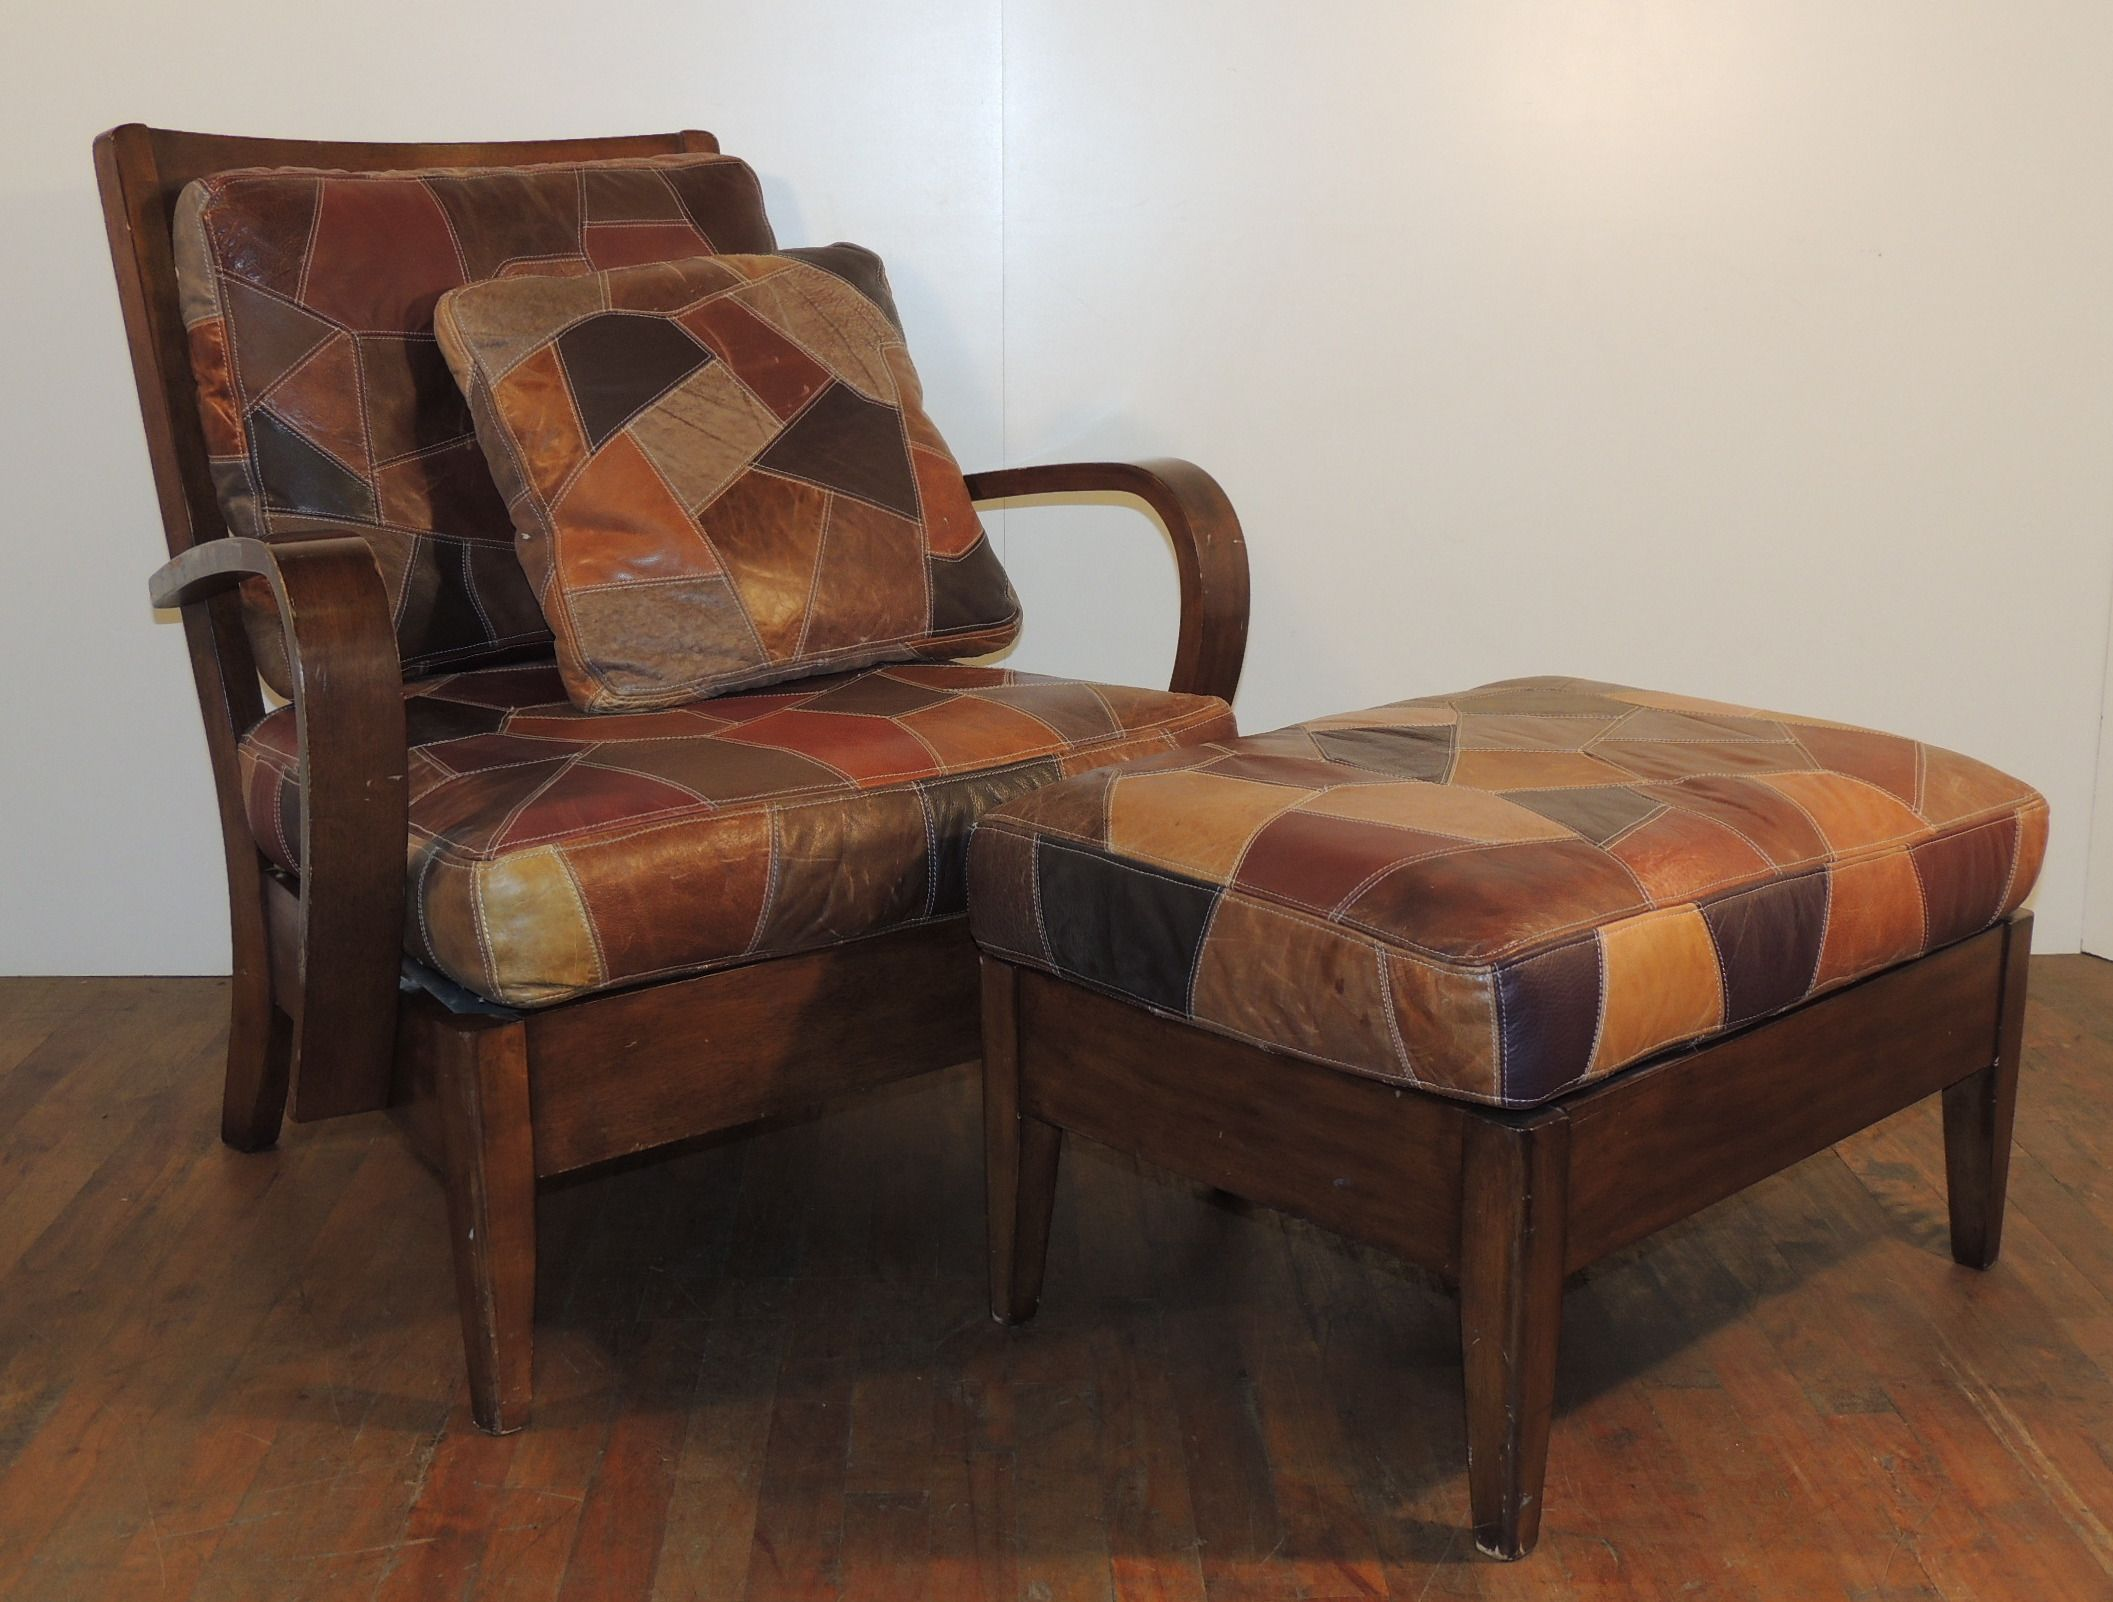 Wooden Chair With Patchwork Leather Cushion Seat And Back And Extra Pillow,  Set With Ottoman   Warner Bros. Property Department